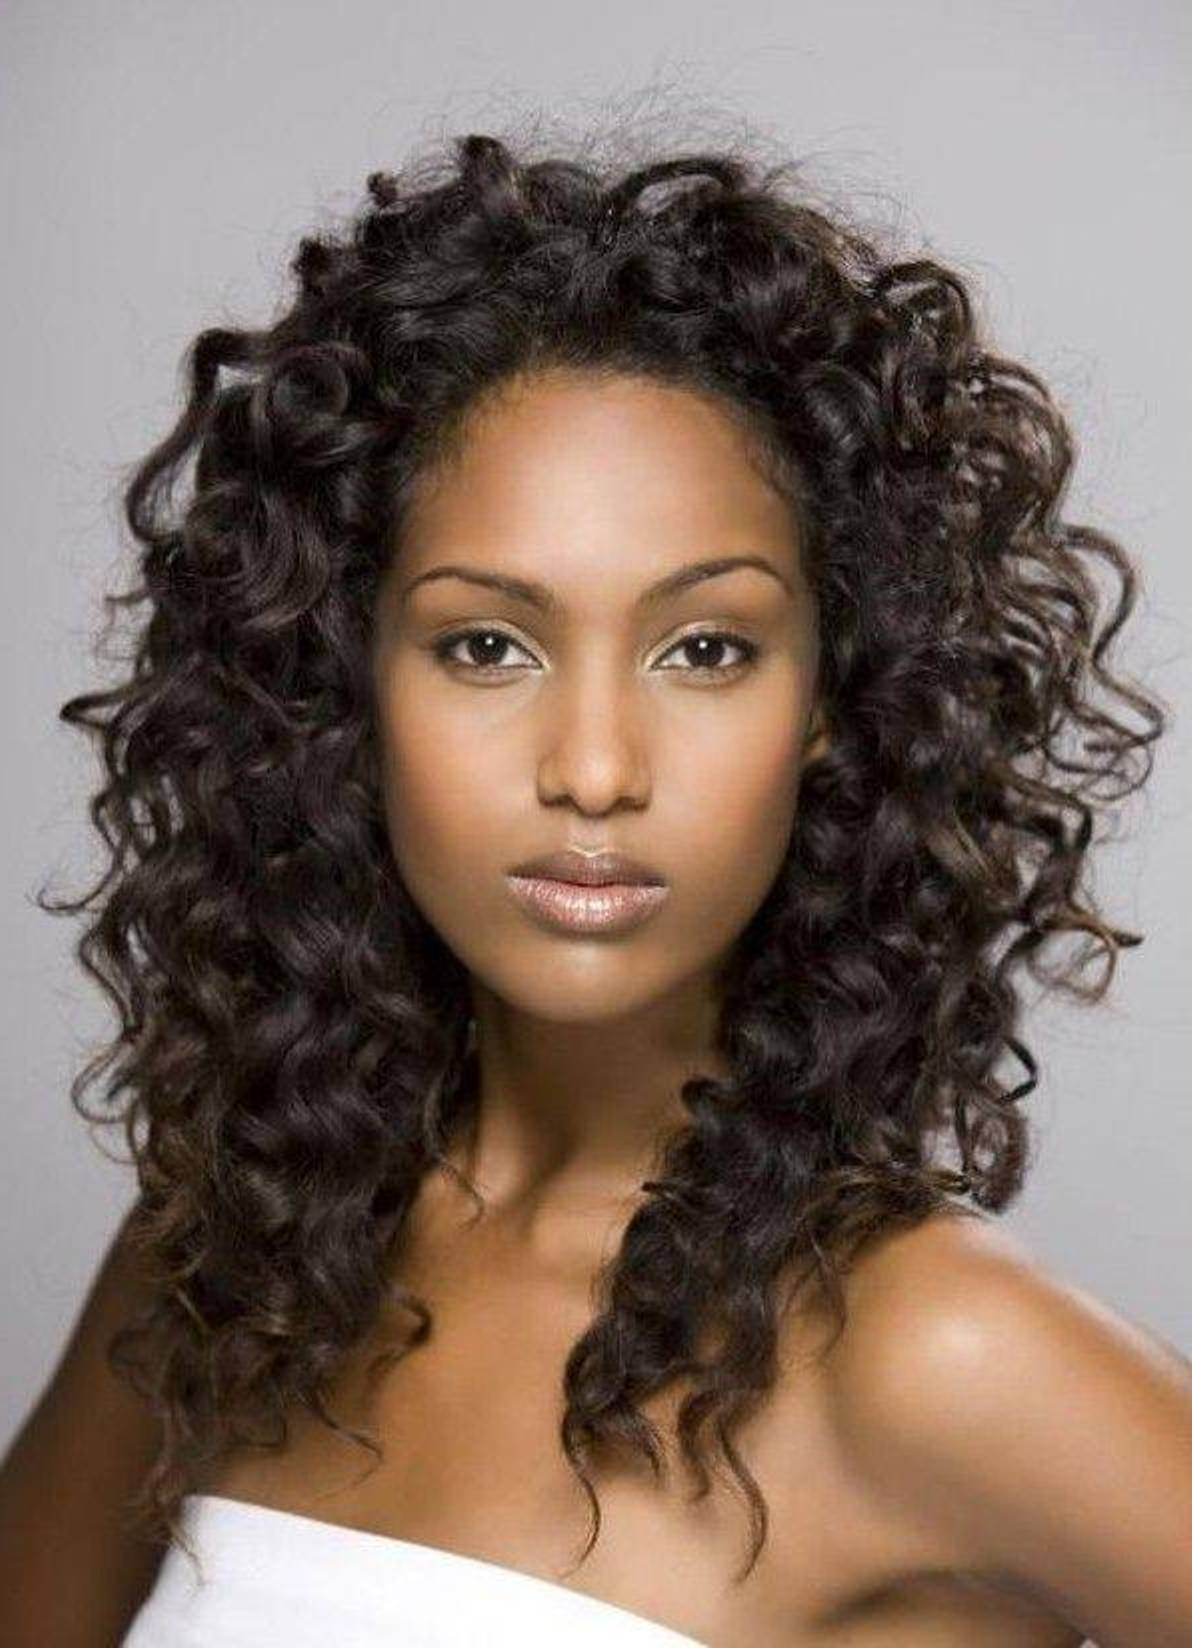 Medium Length Hairstyles For African American Hair  African american hairstyles medium length hair Hairstyle